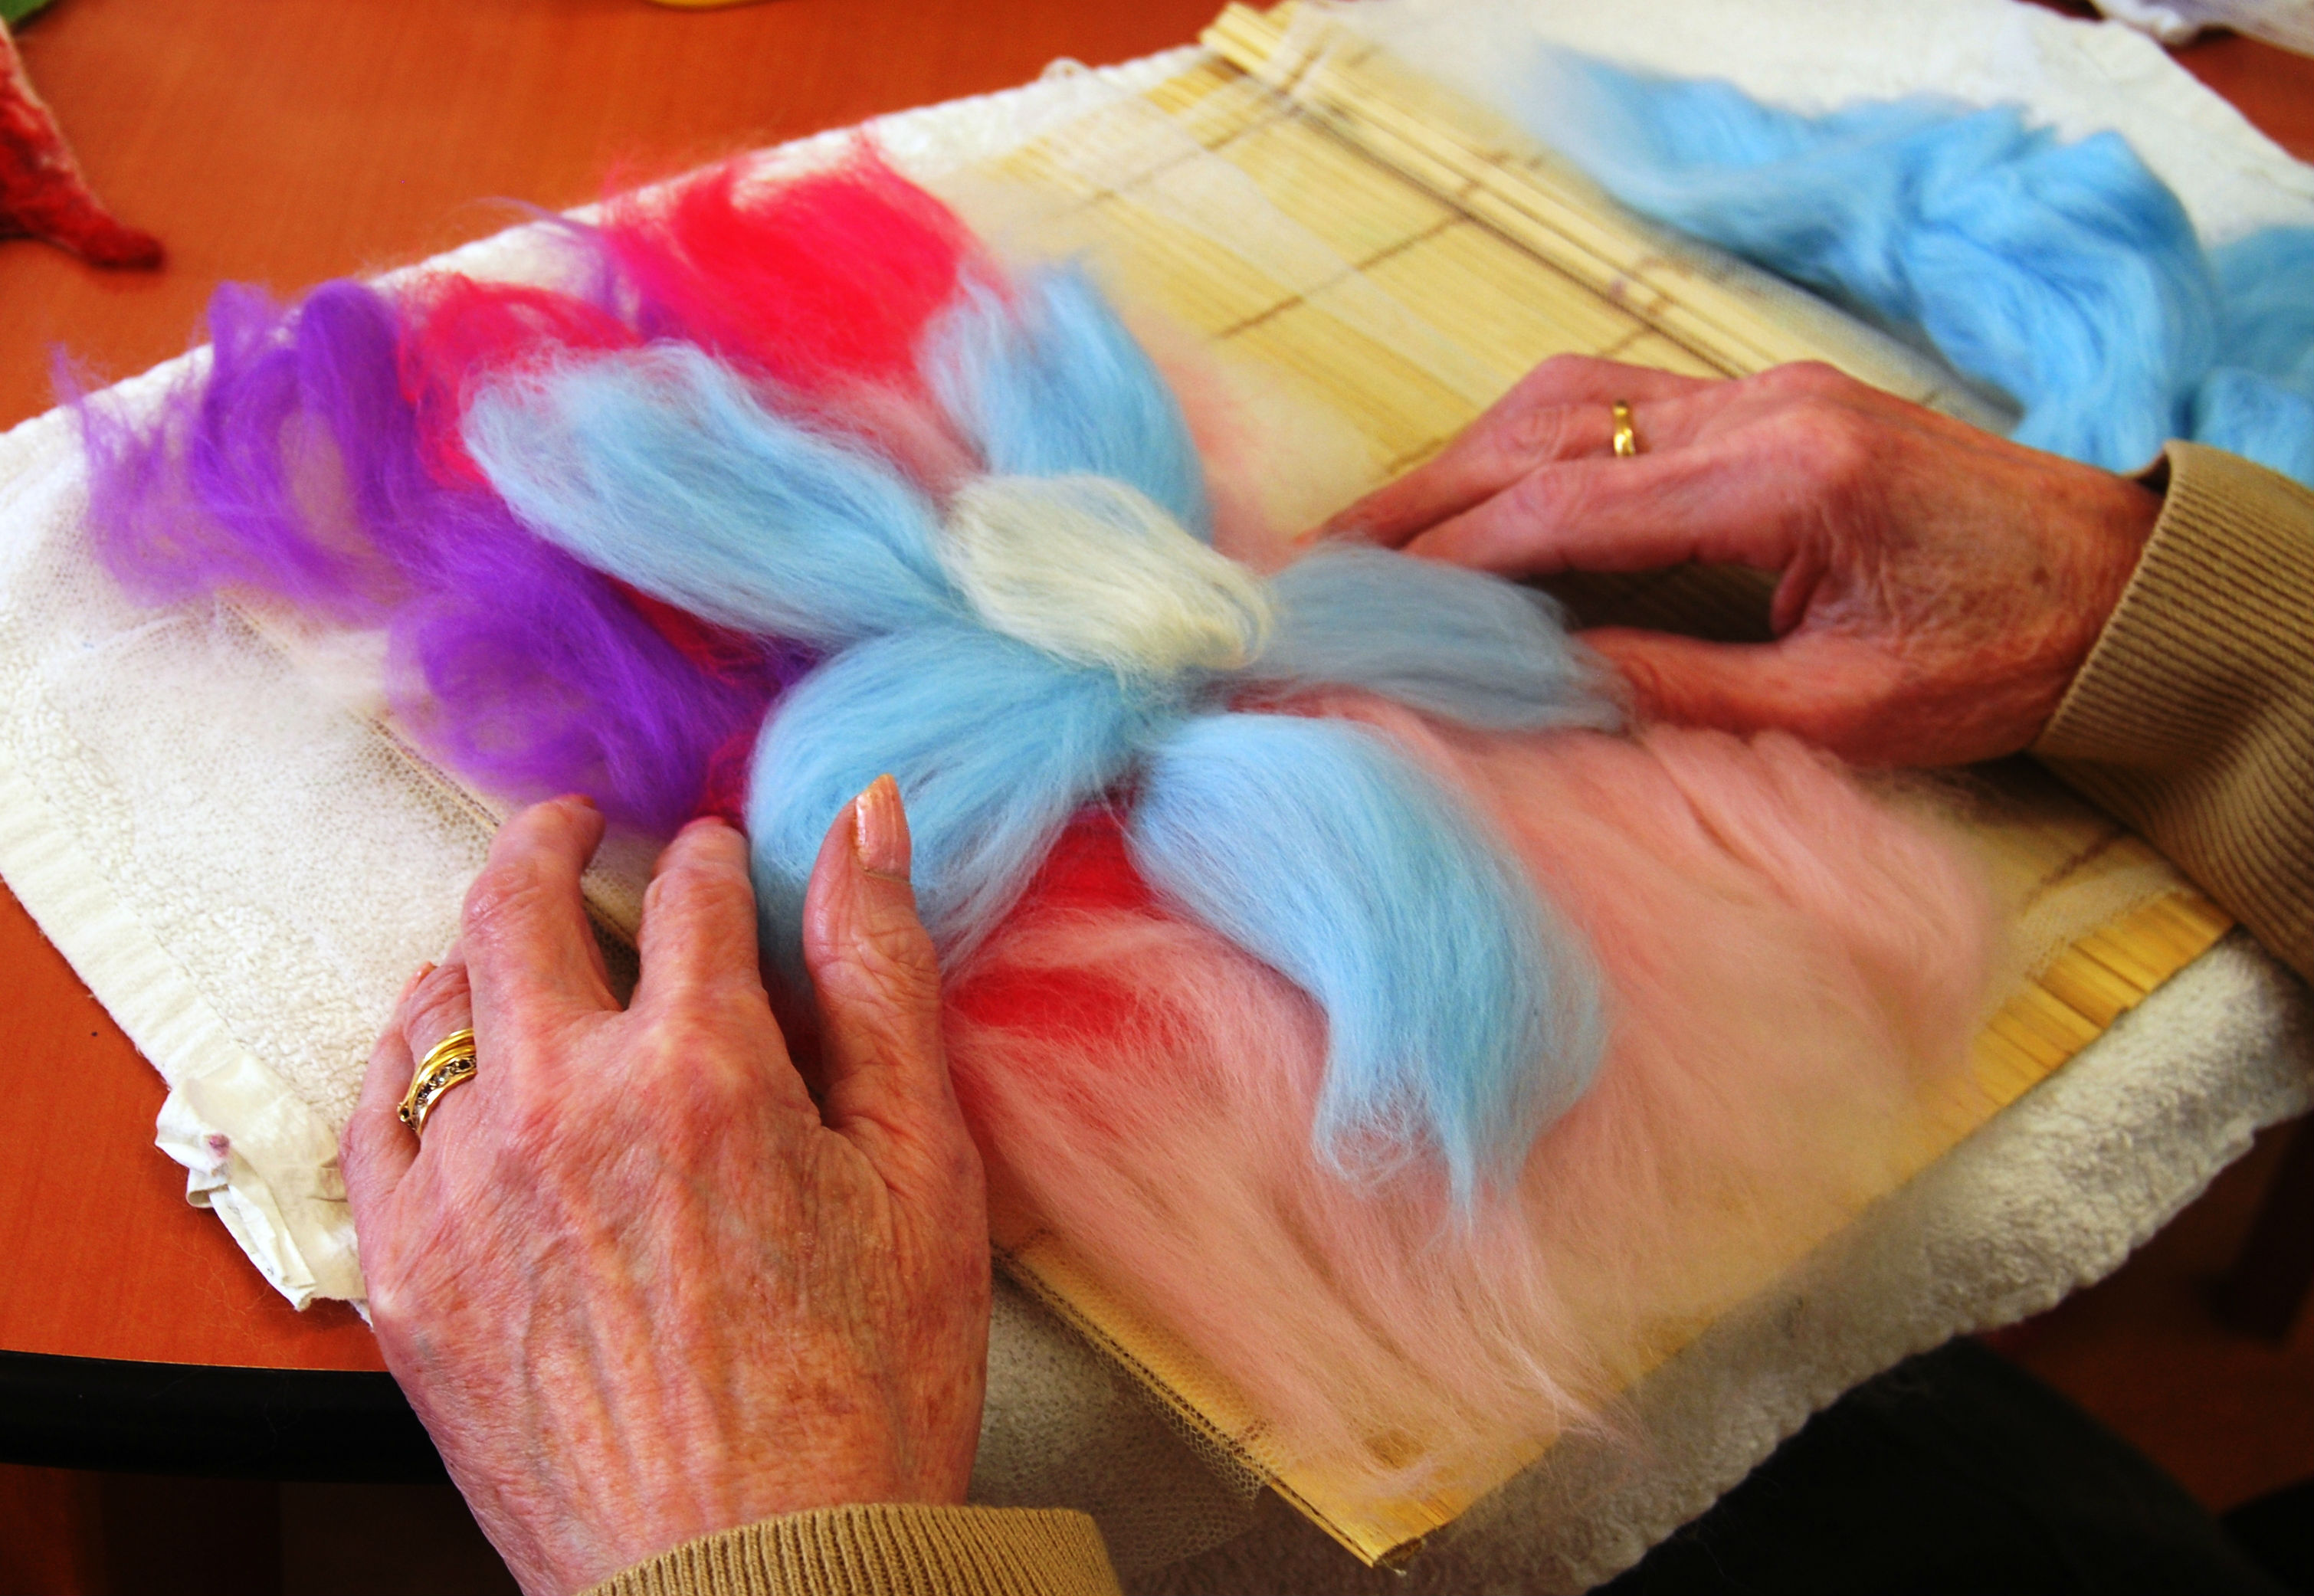 older persons hands work on a felt art project